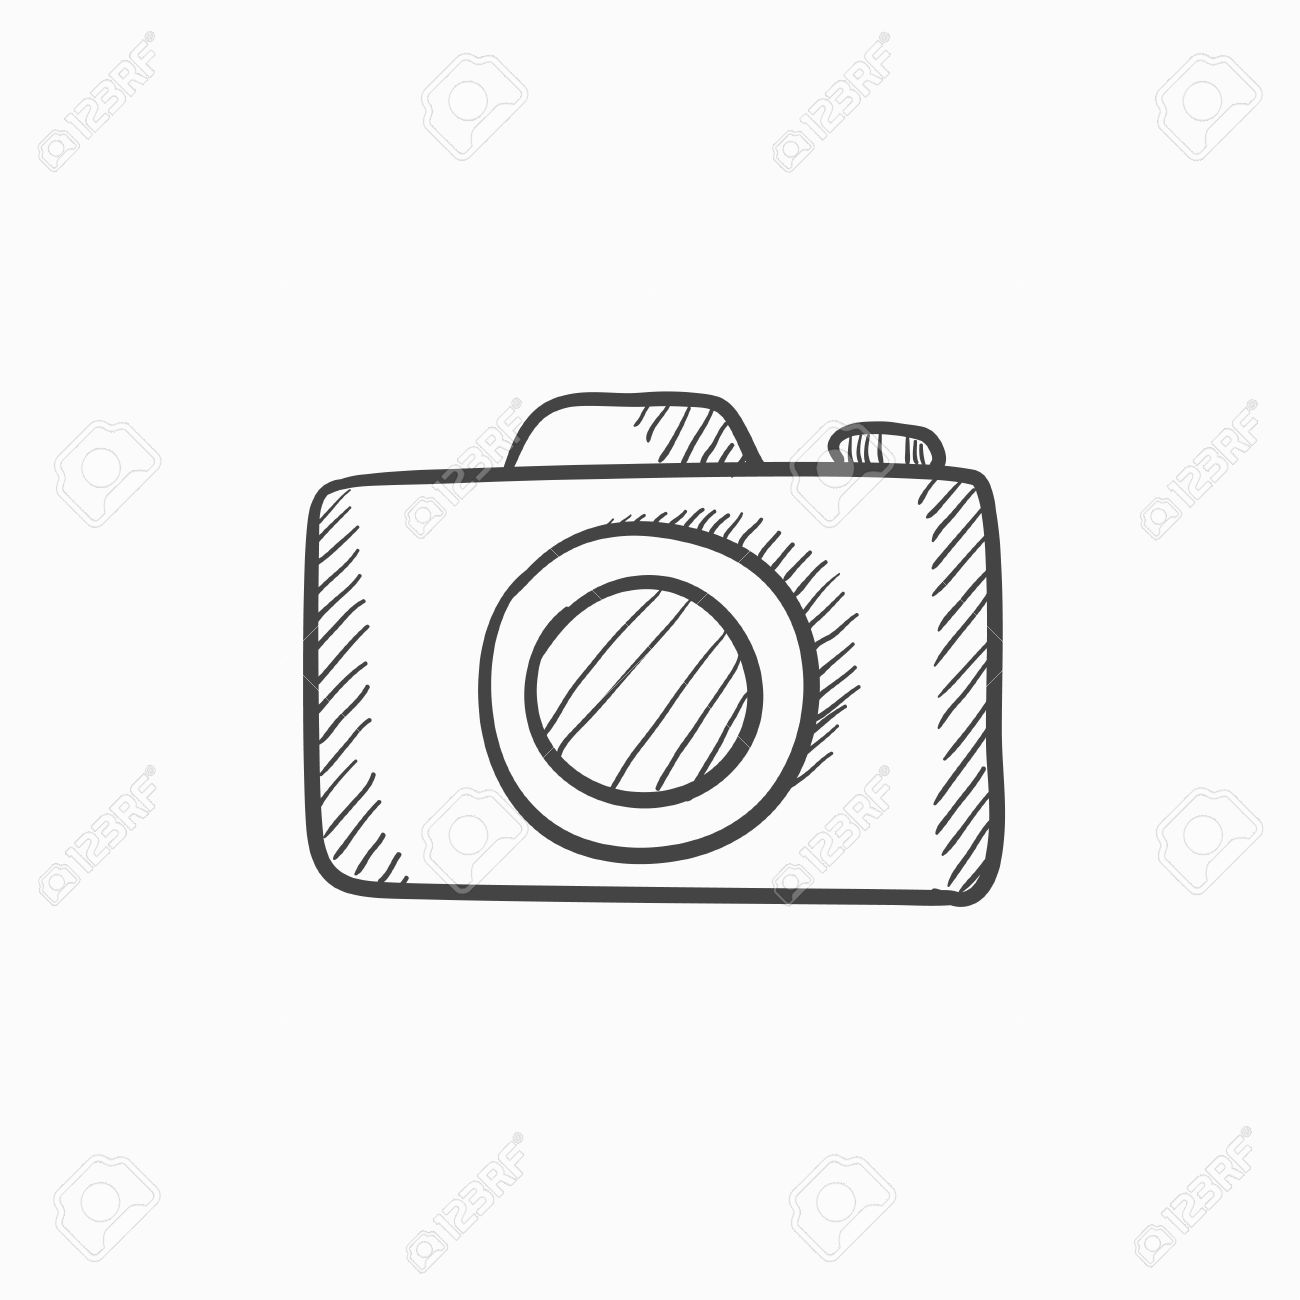 1300x1300 Camera Vector Sketch Icon Isolated On Background. Hand Drawn